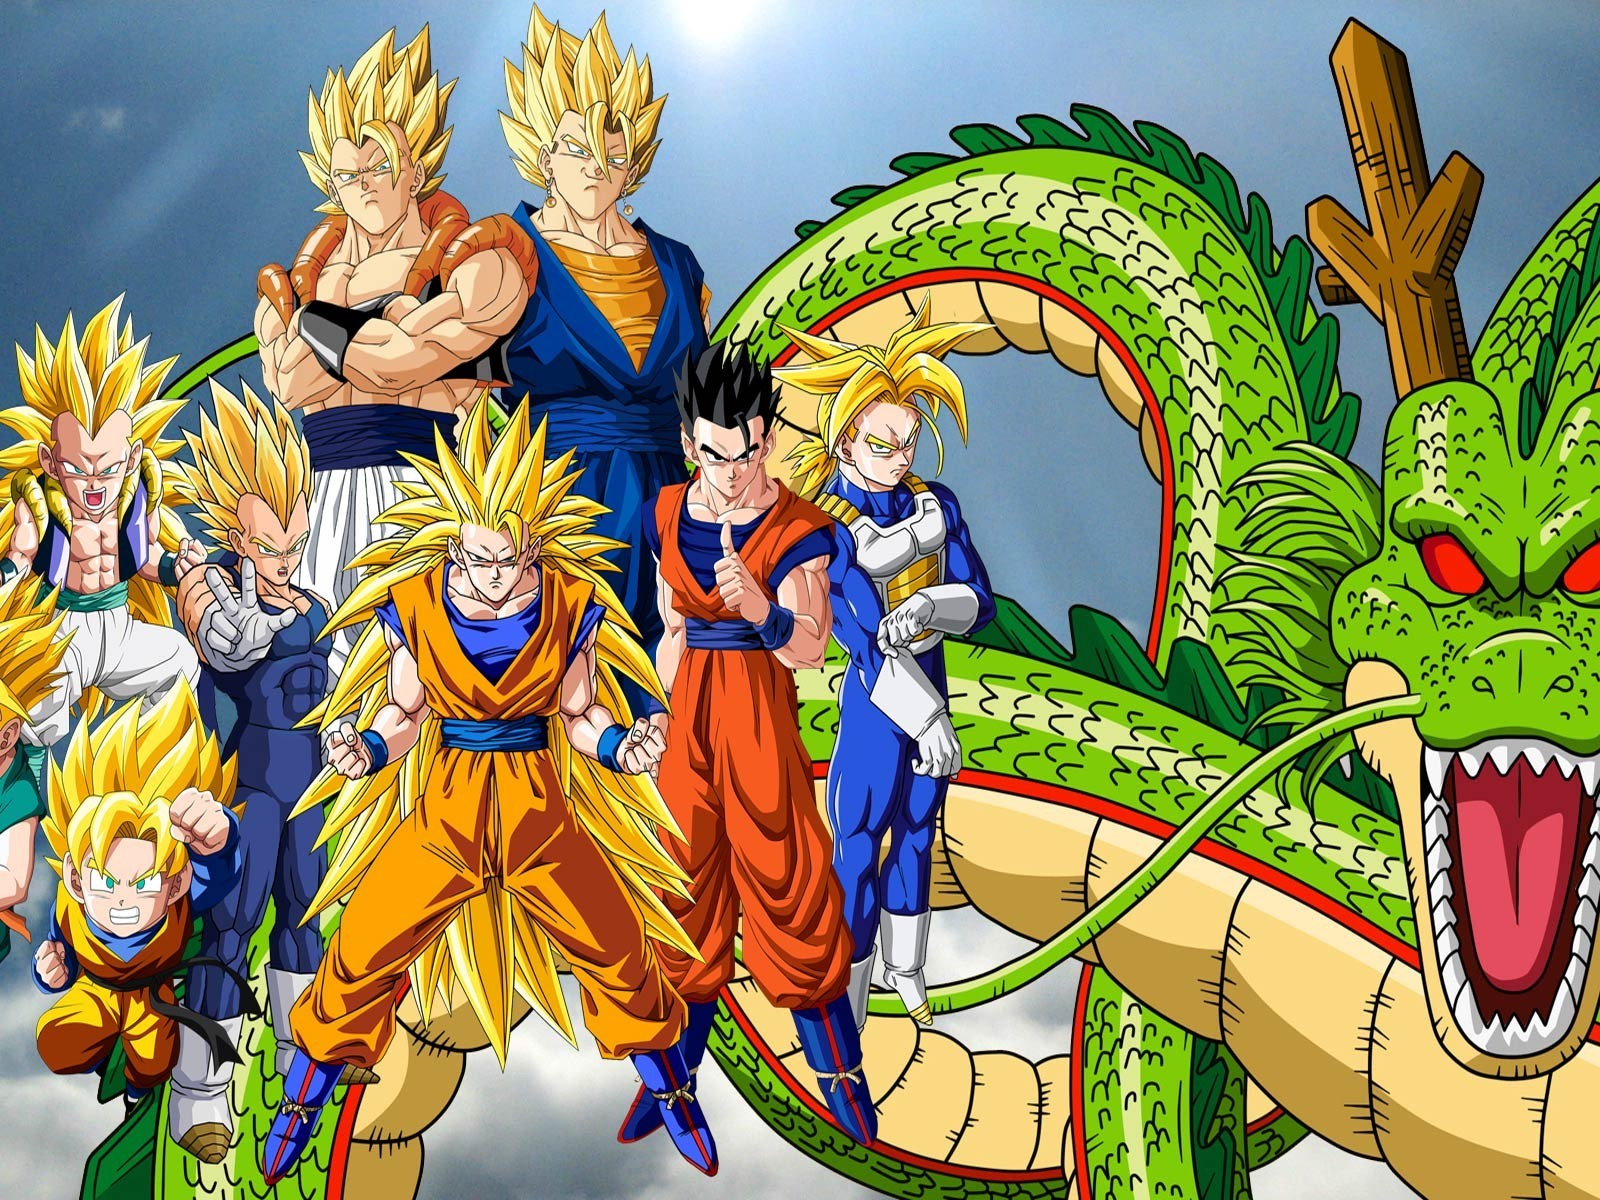 Kai games online lego dragon ball z kai games online dragon ball z